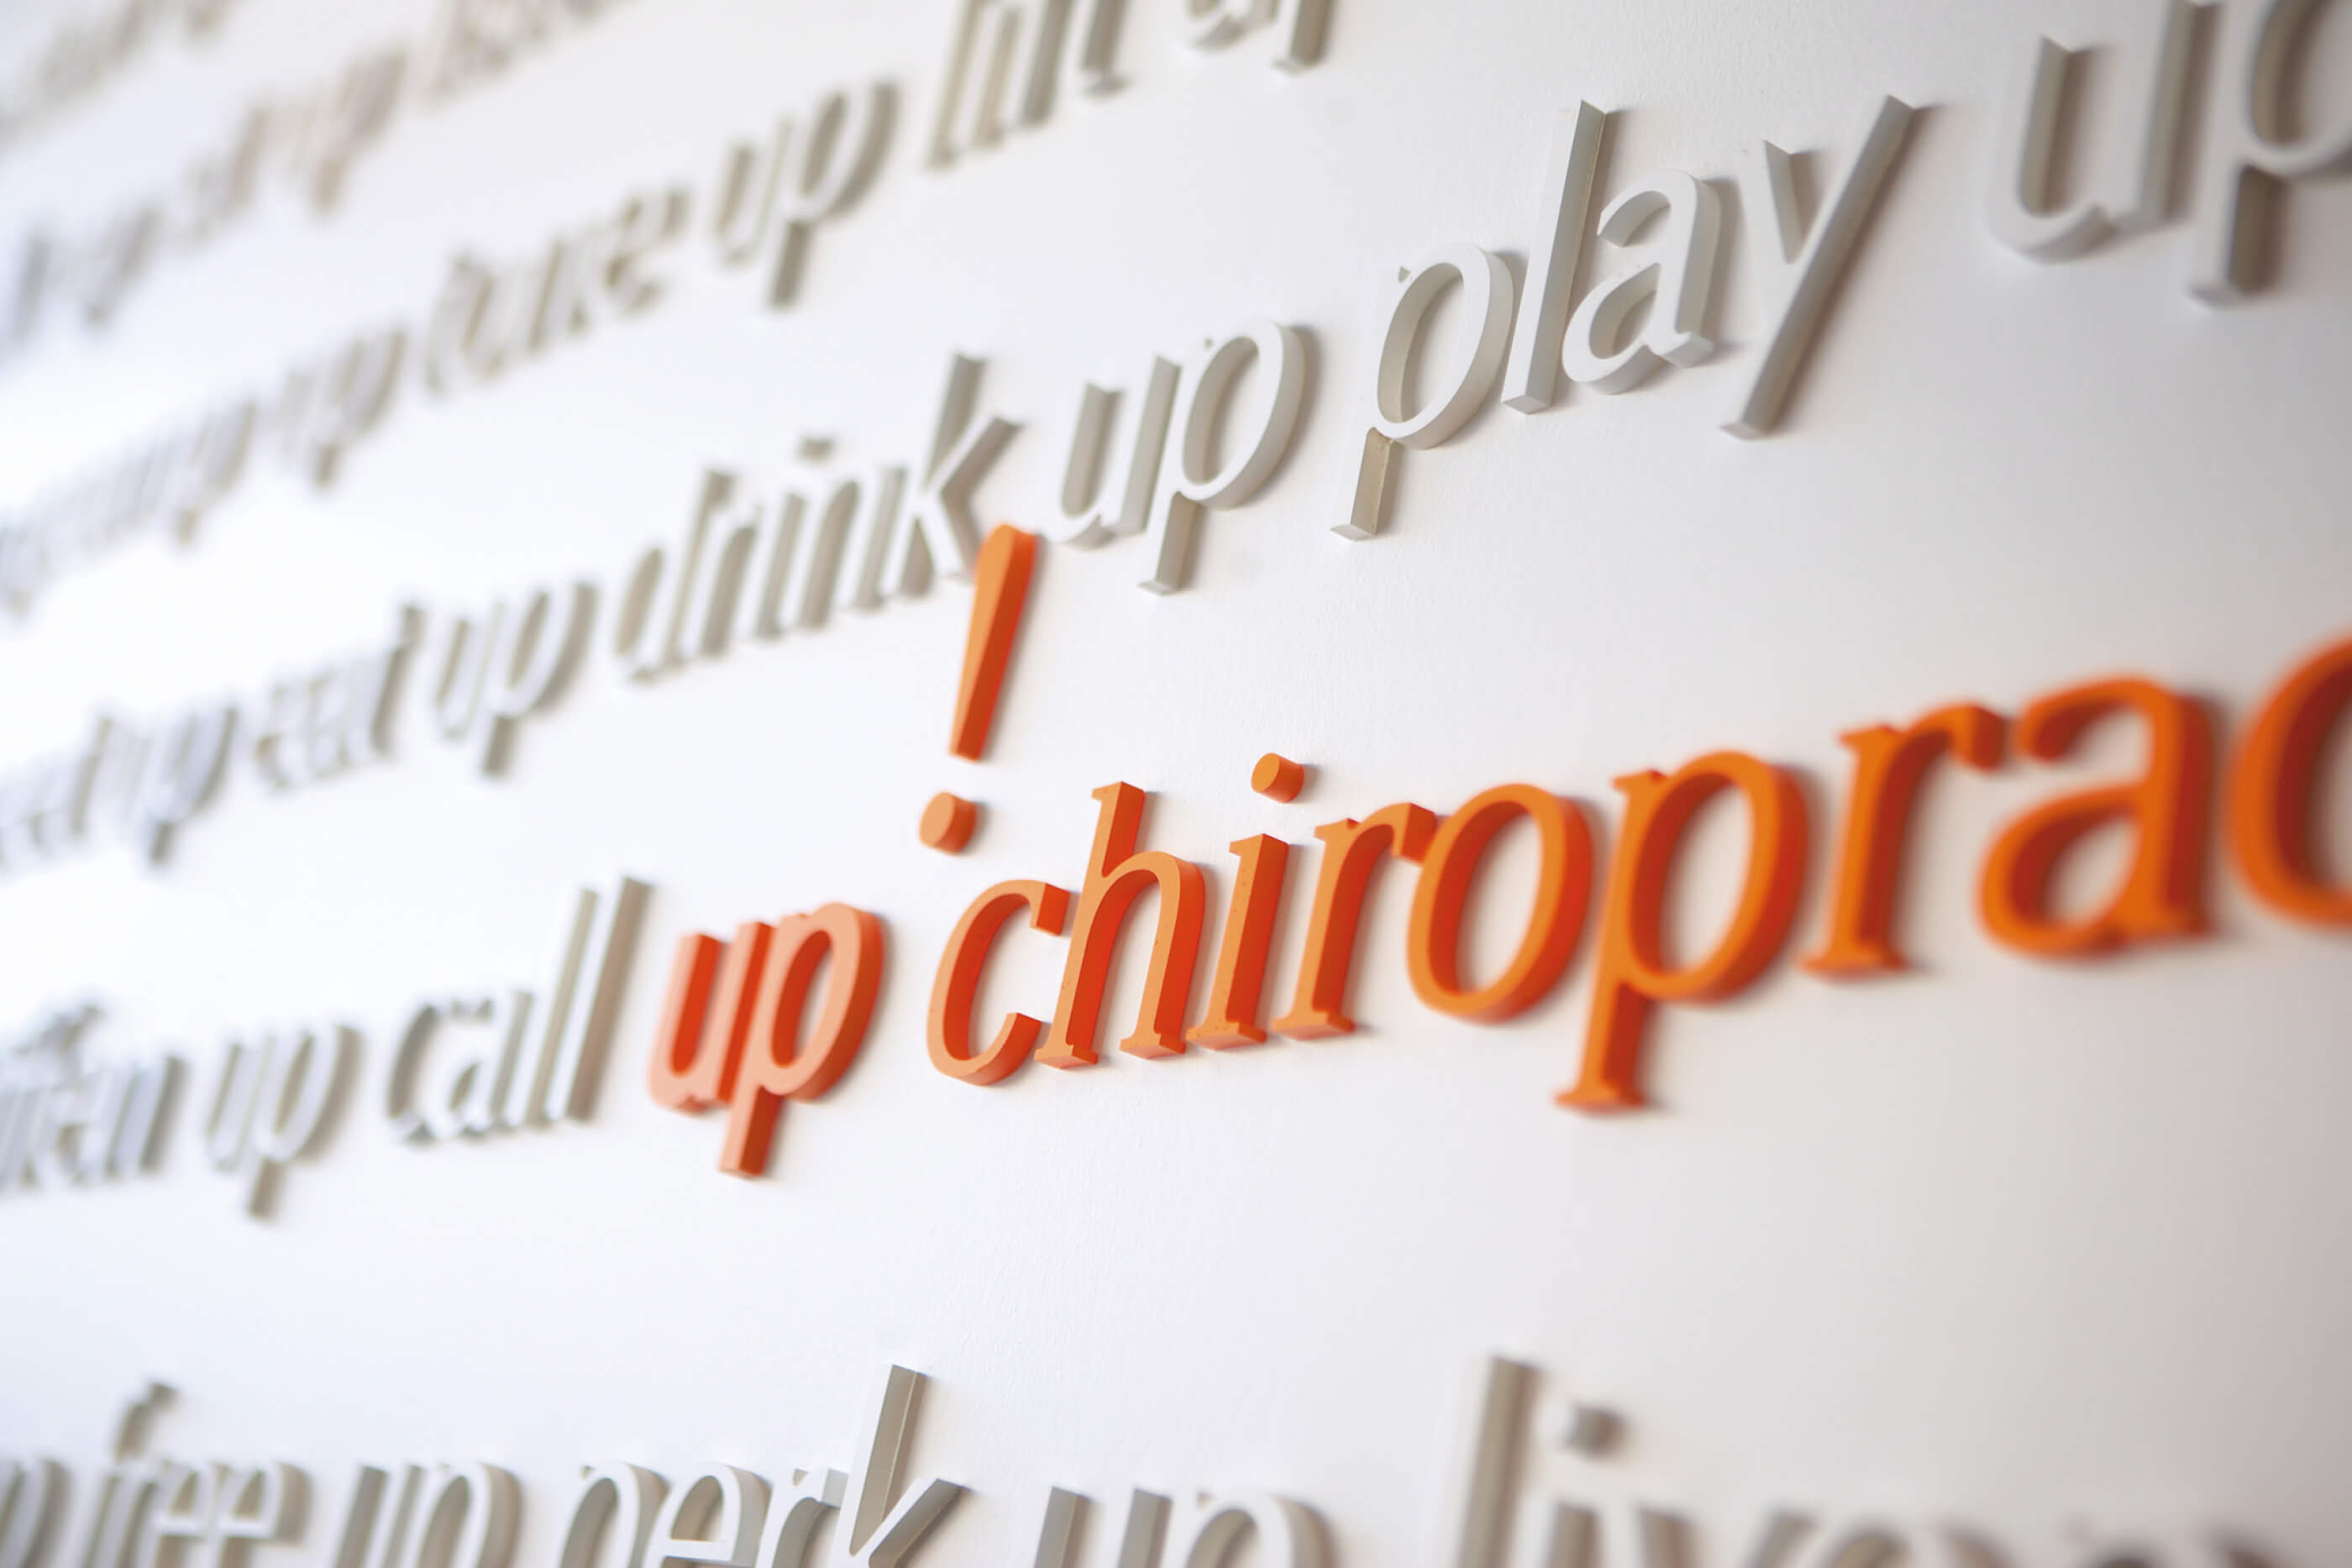 Up Chiropractic